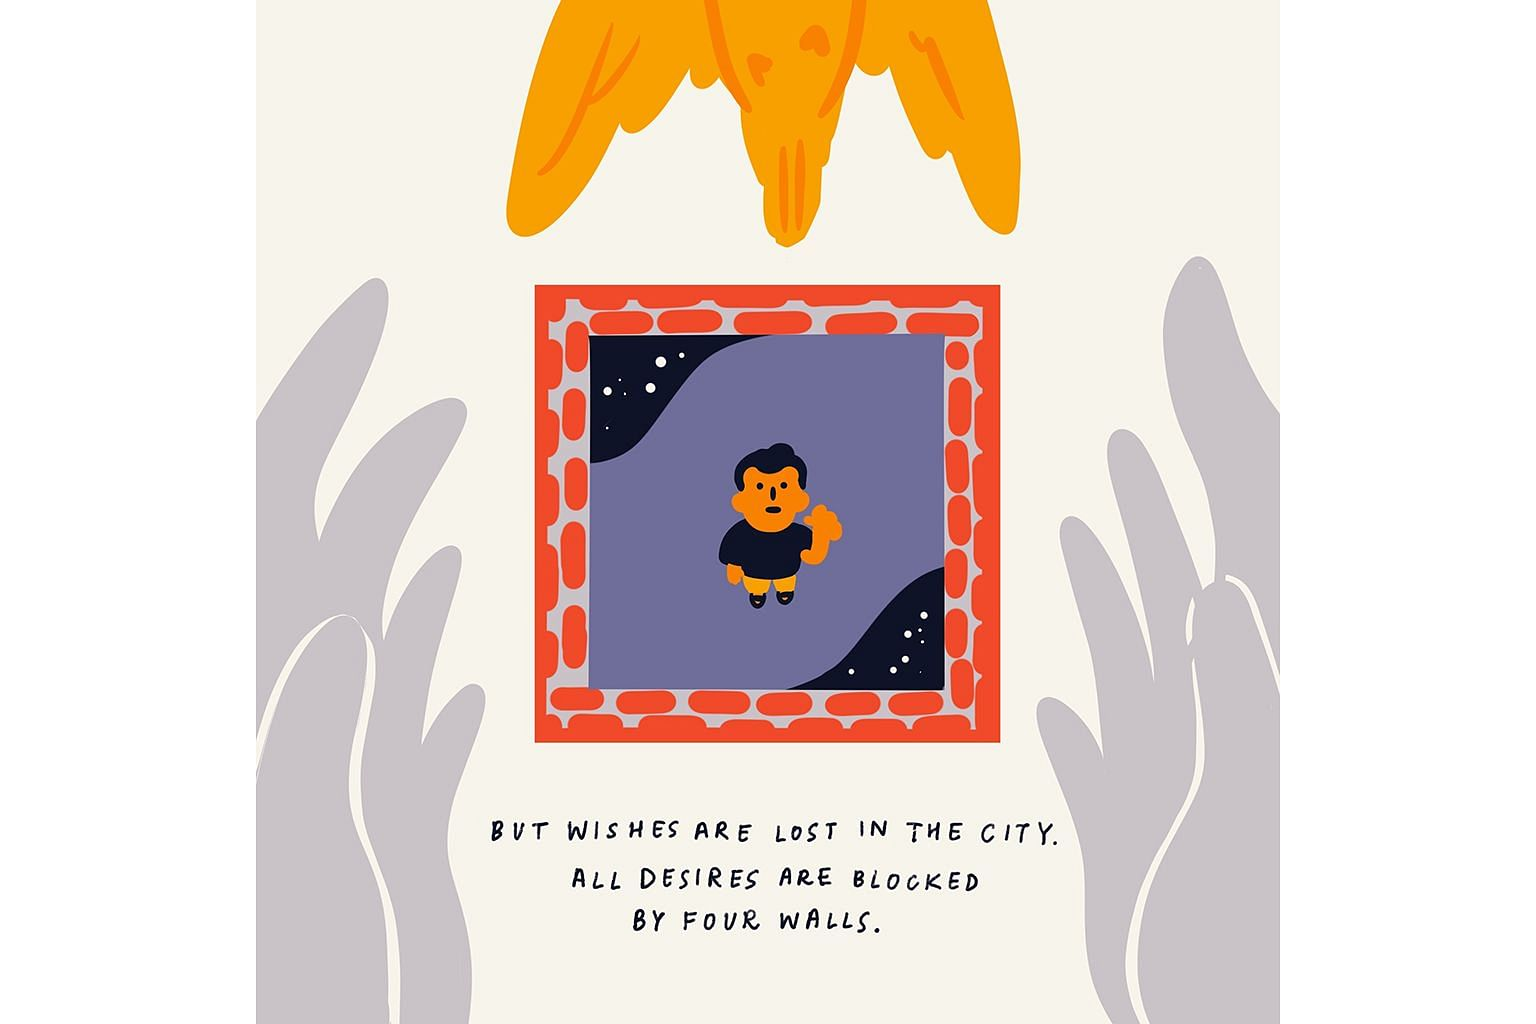 Illustrator Joy Ho, inspired by a poem by construction safety supervisor Md Sharif Uddin, came up with the idea for artists to illustrate poems written by migrant workers to help their words reach a wider audience. She illustrated his poem, The Death Of W